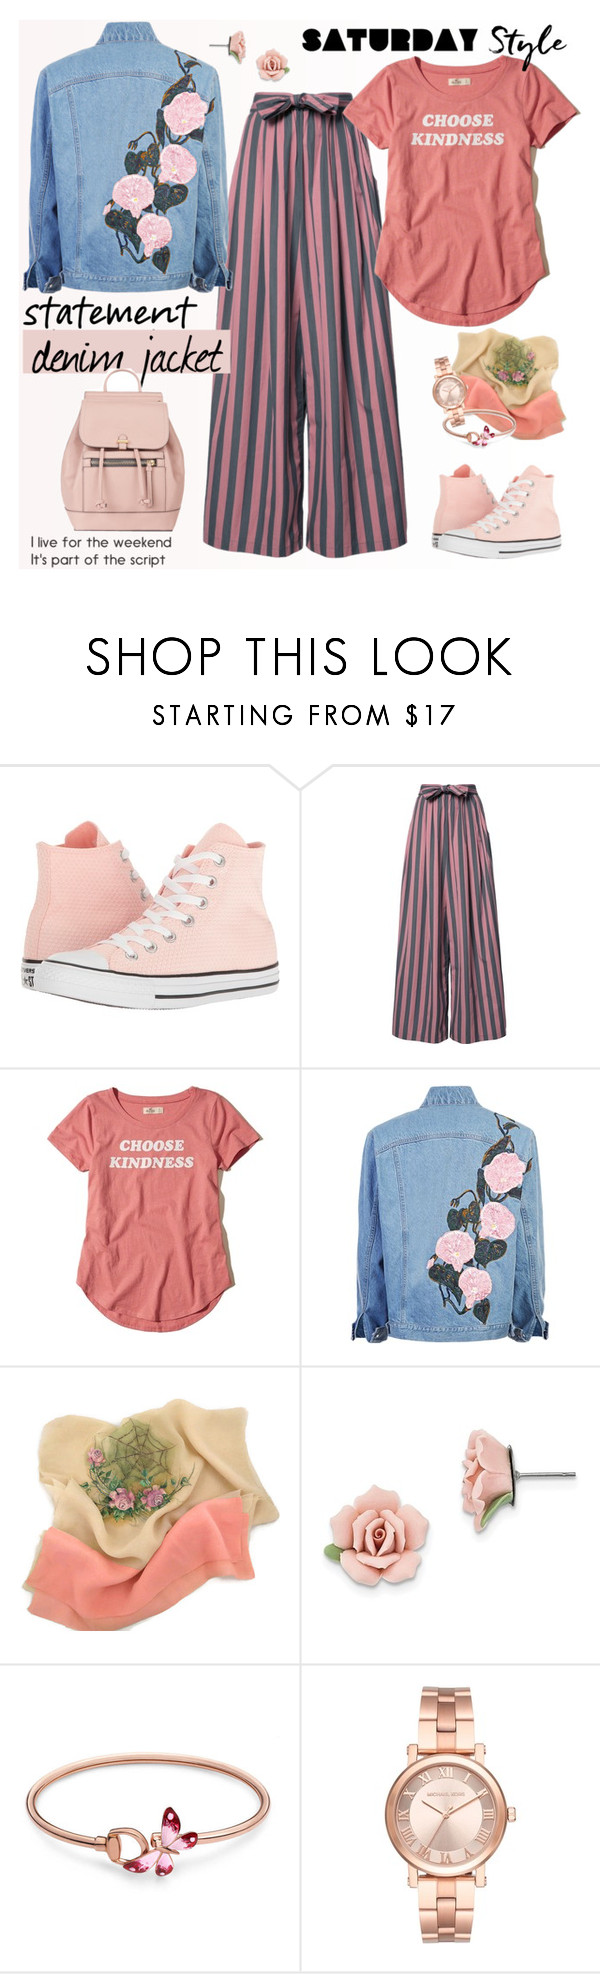 """Statement Denim Jacket"" by ellie366 ❤ liked on Polyvore featuring Converse, Tome, Hollister Co., 1928, Gucci, Michael Kors, Accessorize, casual, denimjacket and widelegpants"